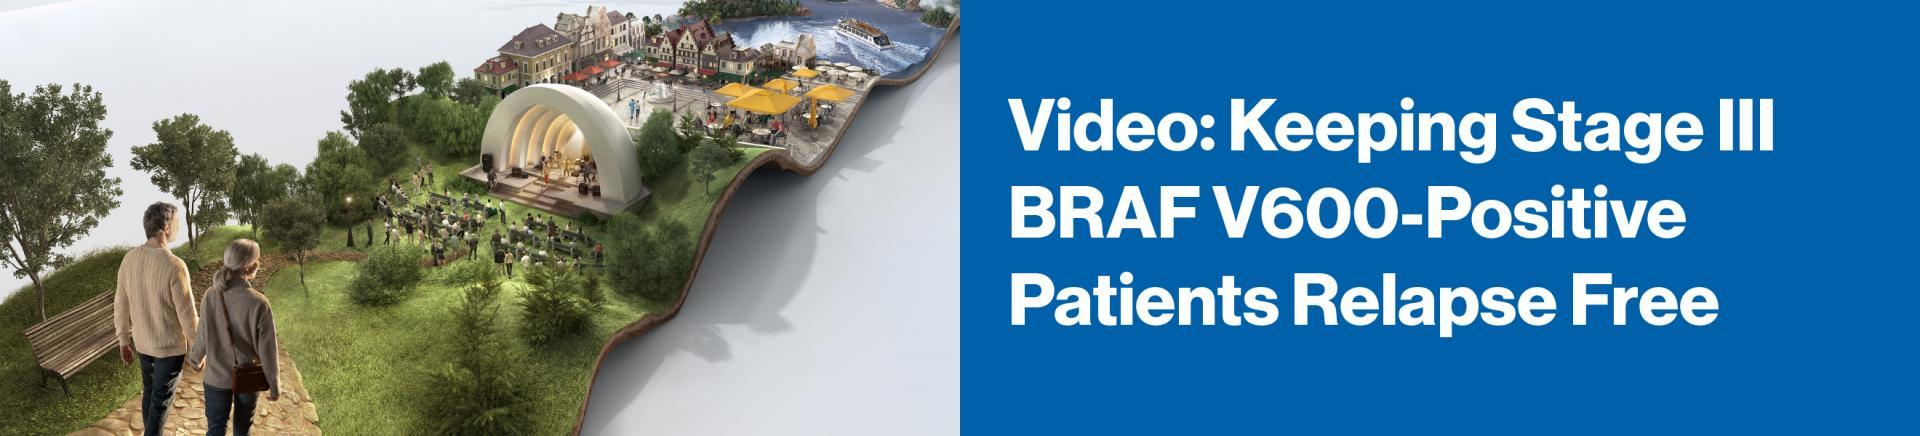 Keeping stage III BRAF V600-positive patients relapse free